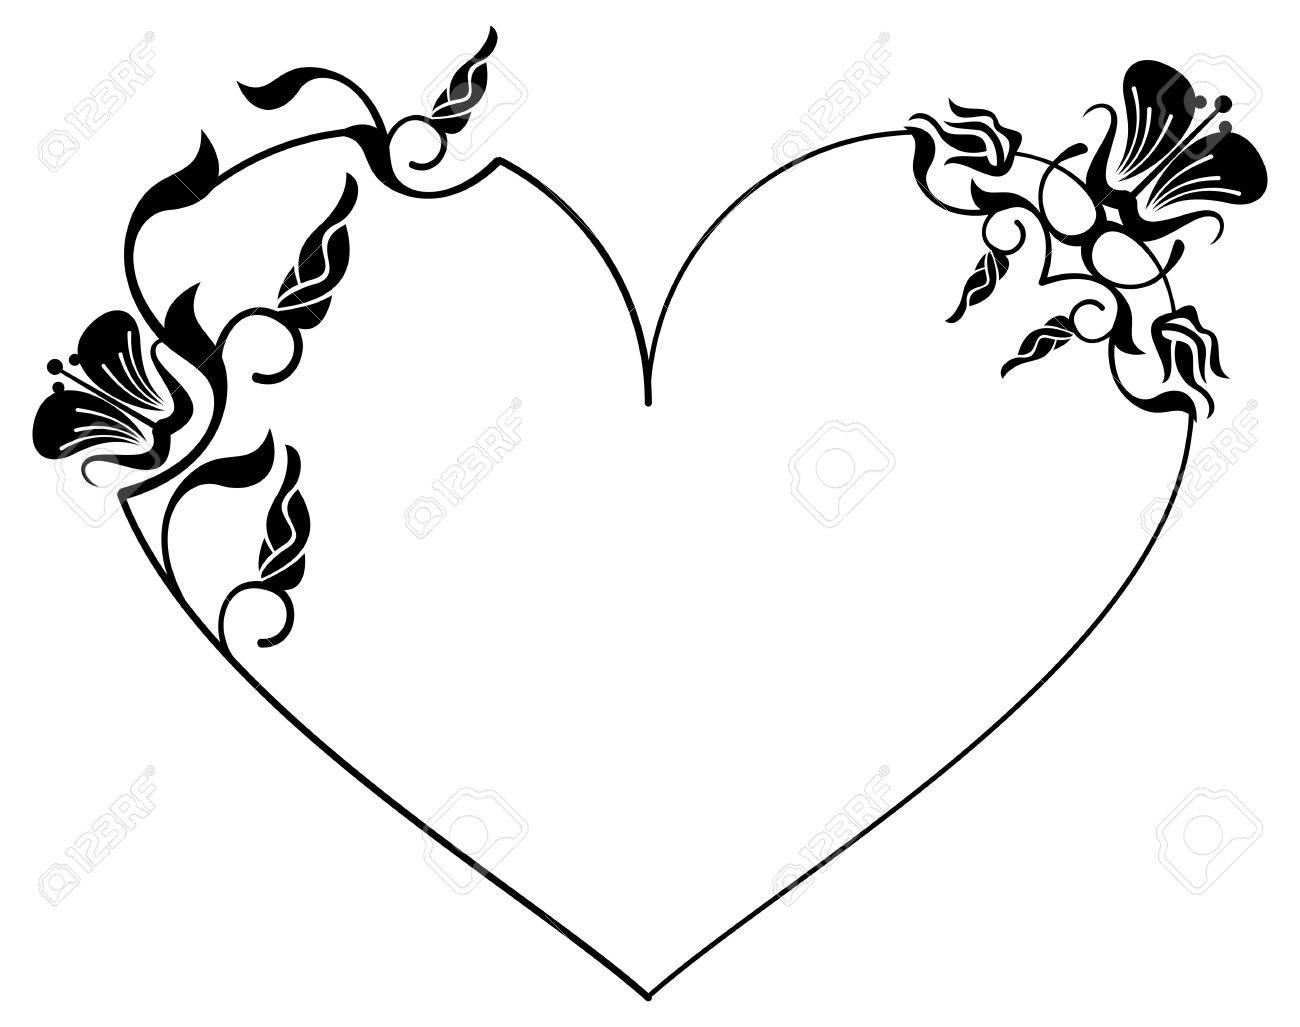 Heart free download best. Flower frame and hearts clipart black and white